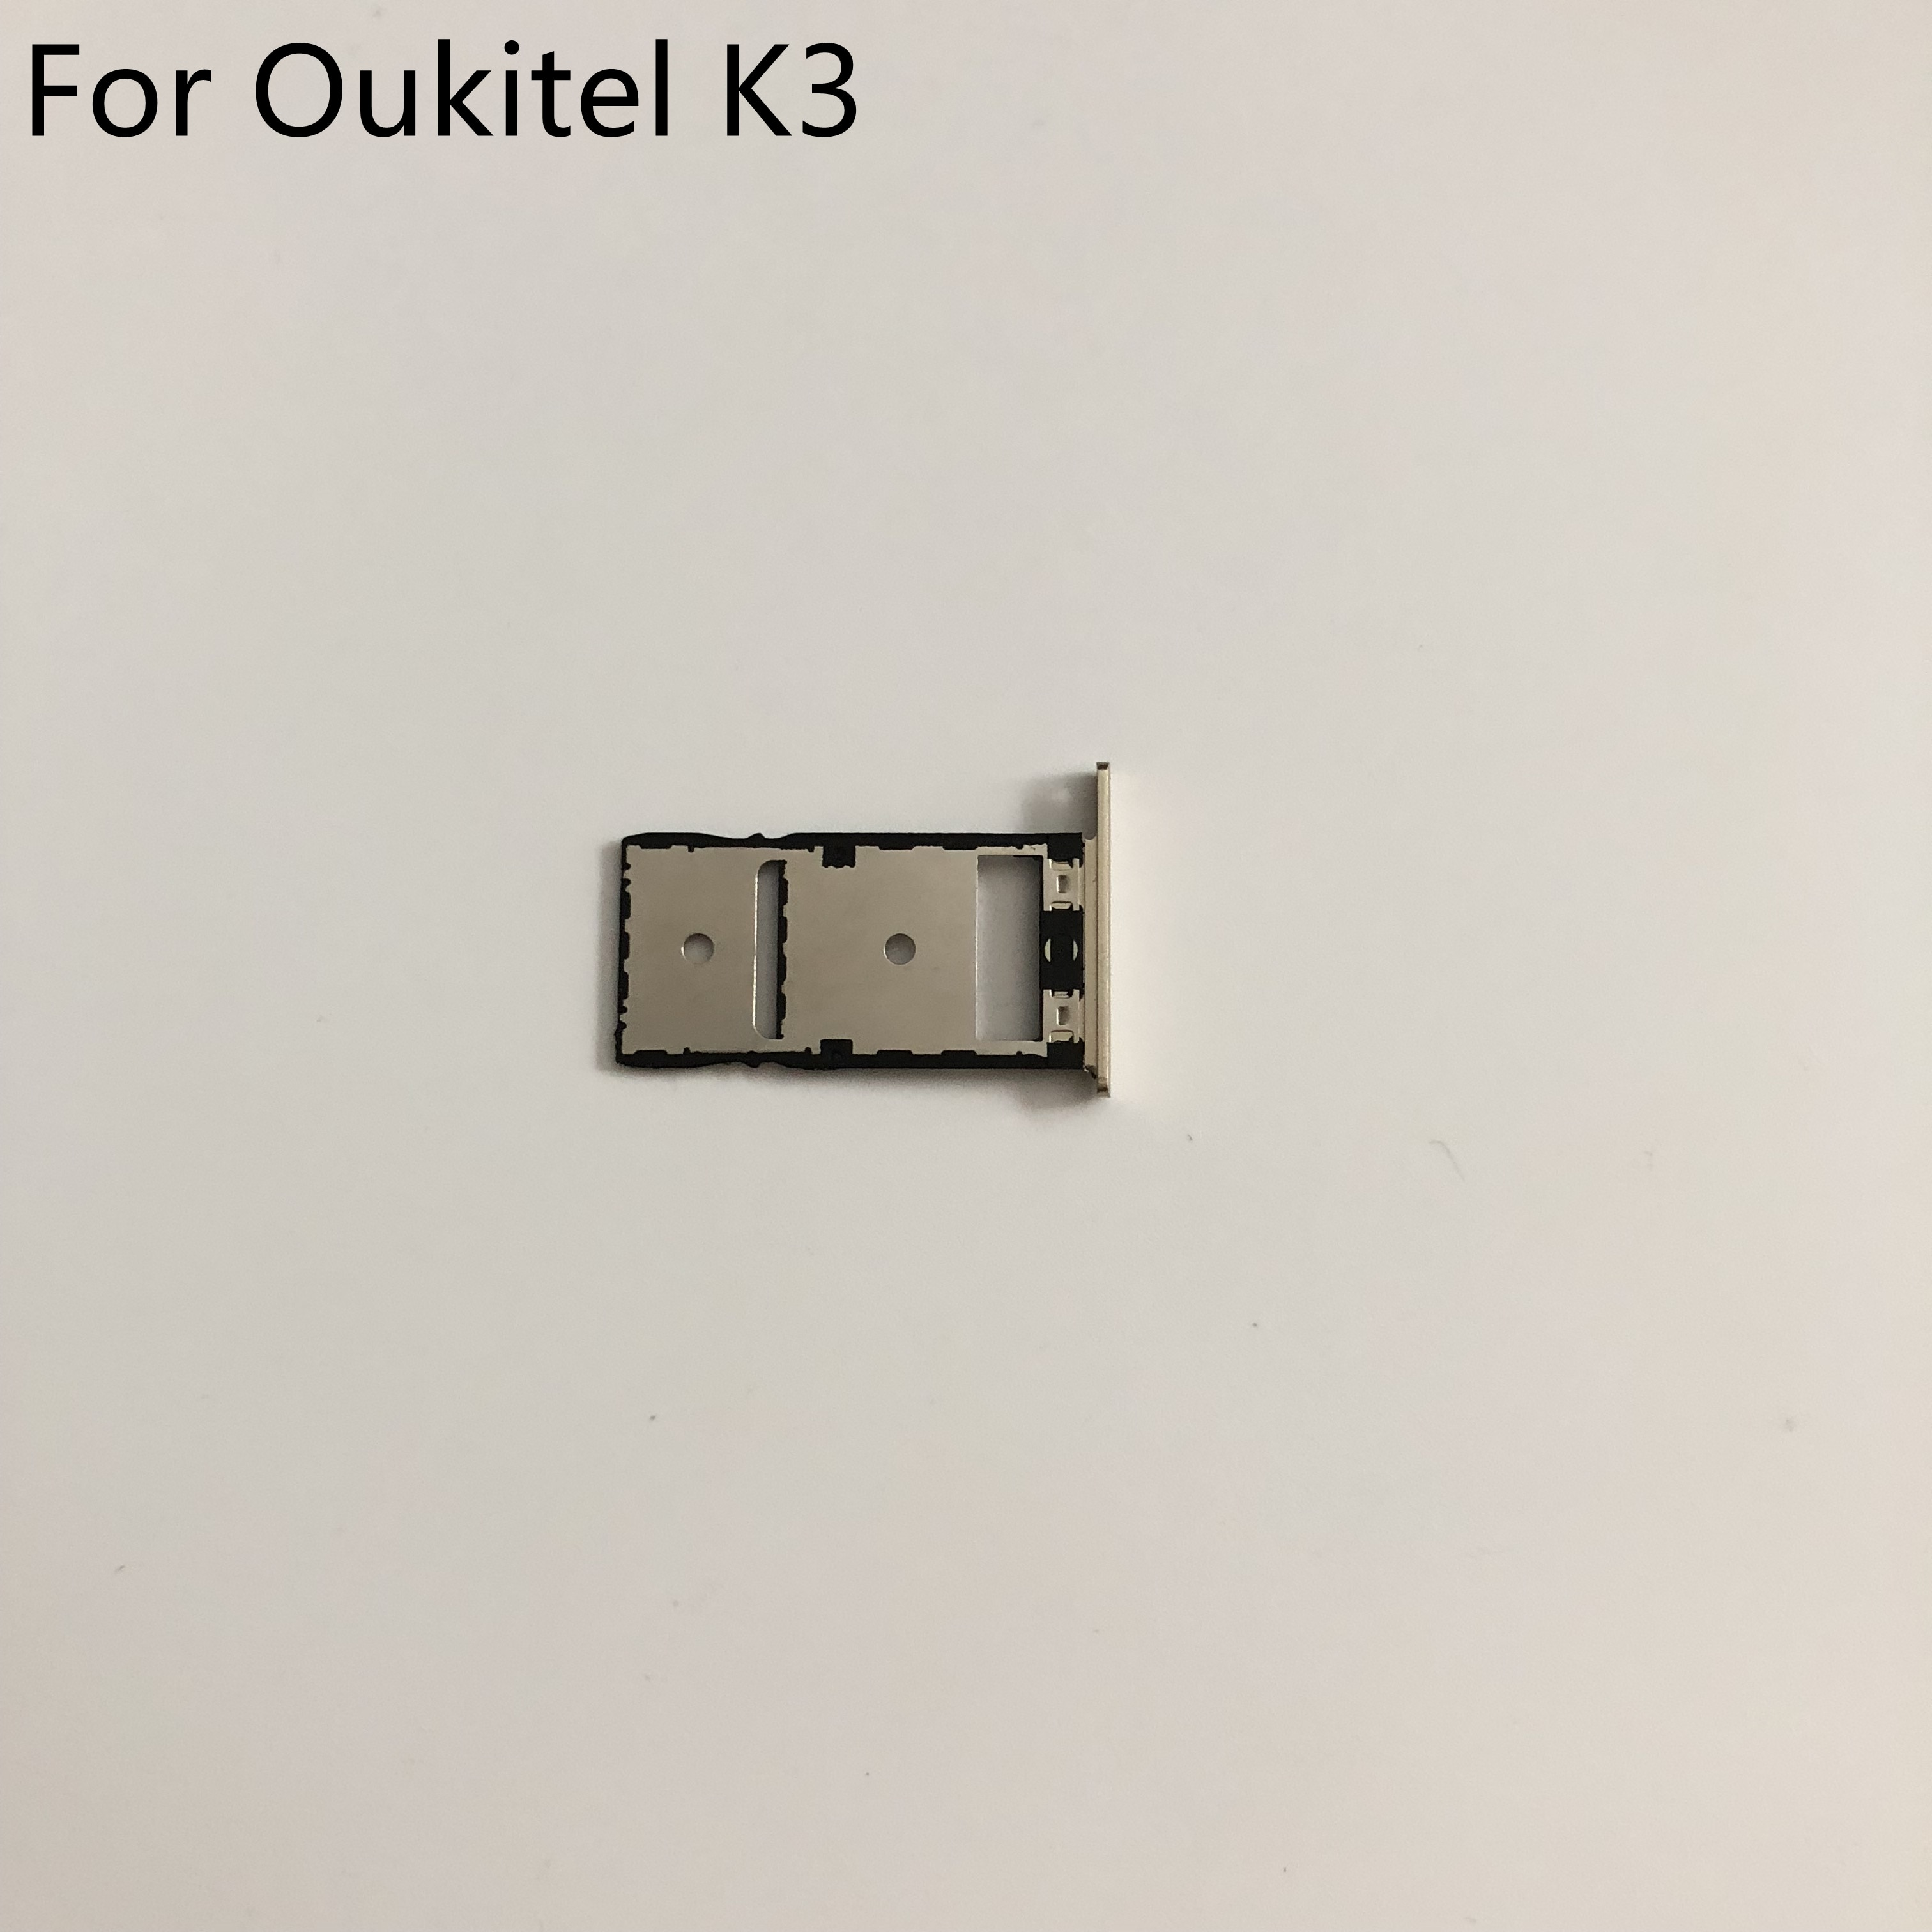 New Sim Card Holder Tray Card Slot For Oukitel K3 MT6750T Octa Core 5.5 inch FHD 1920x1080 + Tracking Number